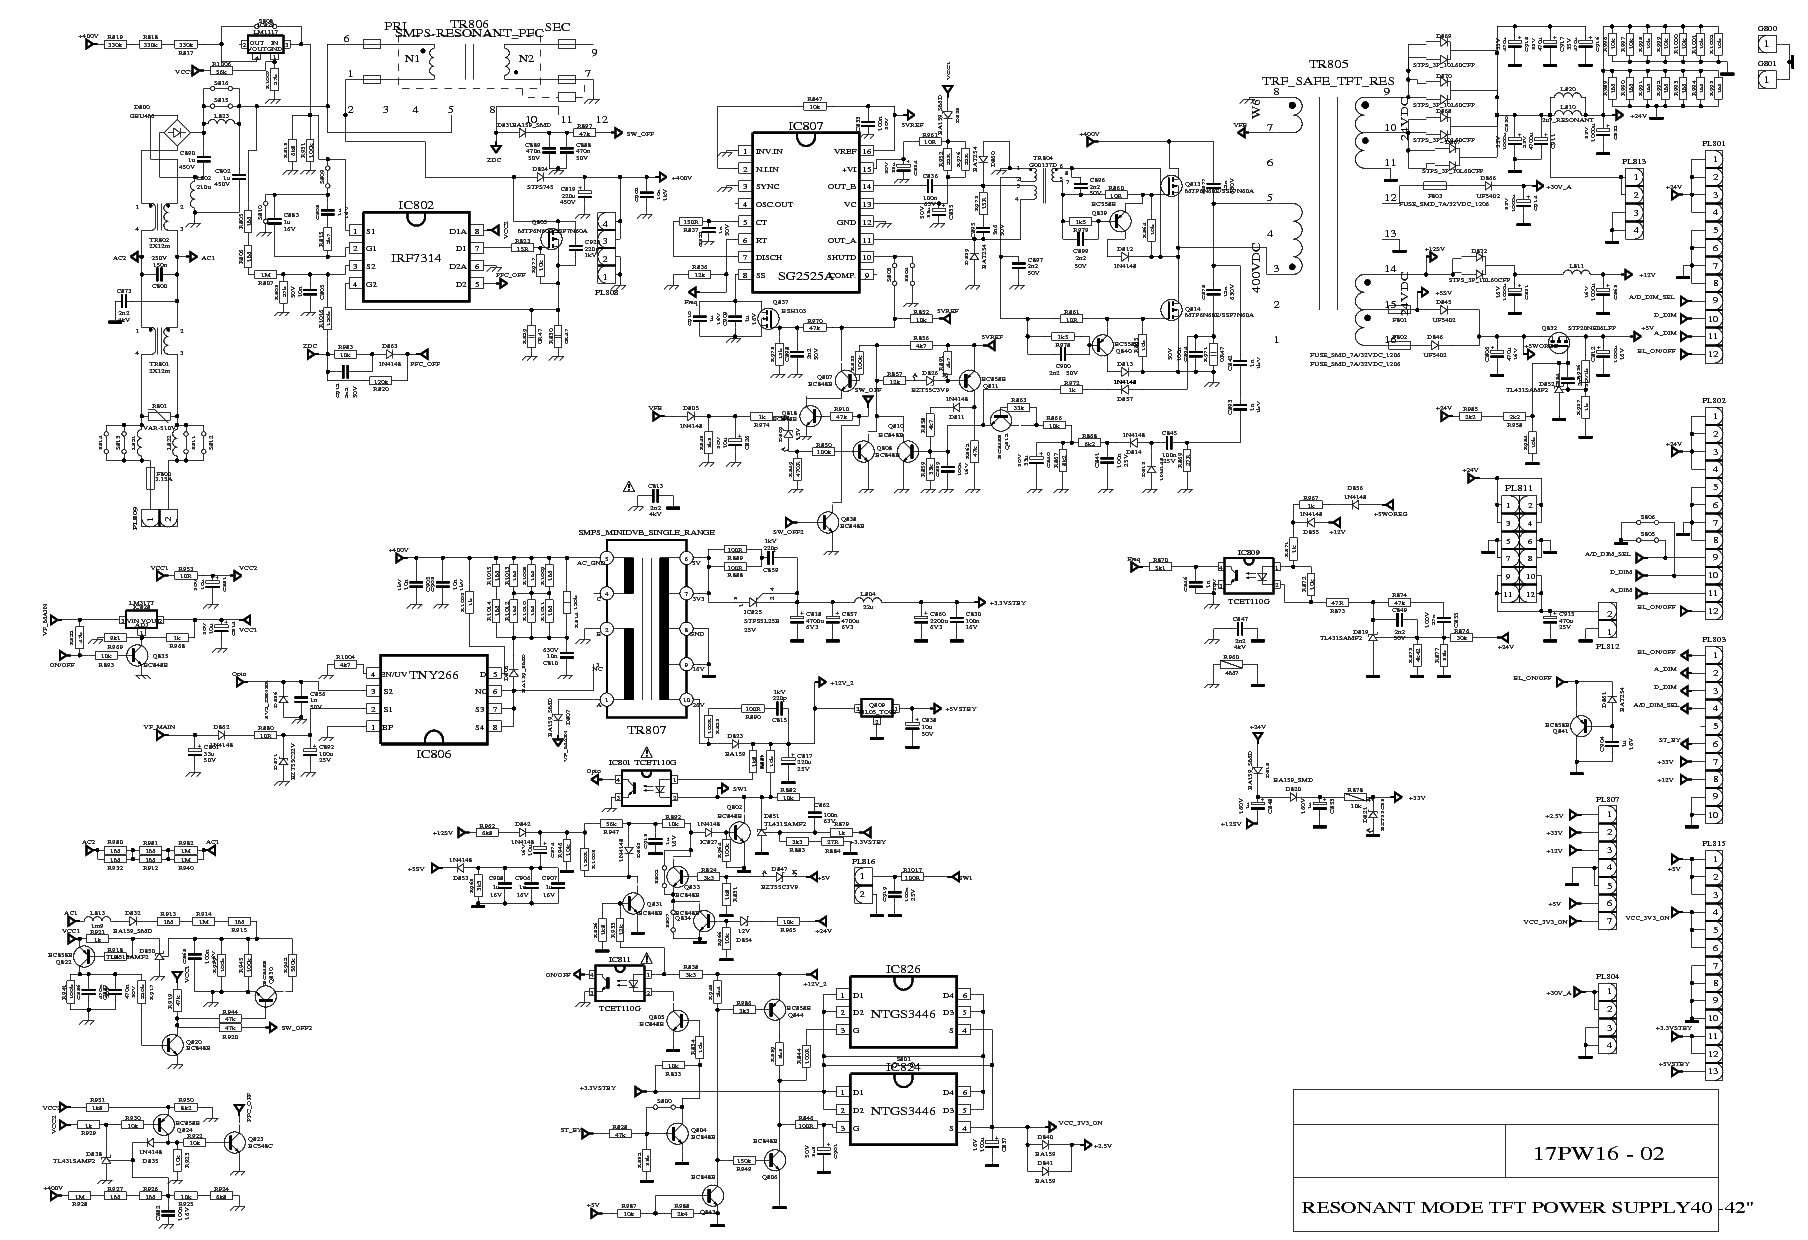 varitone wiring diagram 5 with Prs Wiring Diagram on Rickenbacker 325 Wiring Diagram moreover Esp Ltd Ec 254 Wiring Schematic besides 132135 Nash Les Paul Style Wiring Diagram likewise 2011 03 01 archive together with Pickup Switch Wiring Diagram.